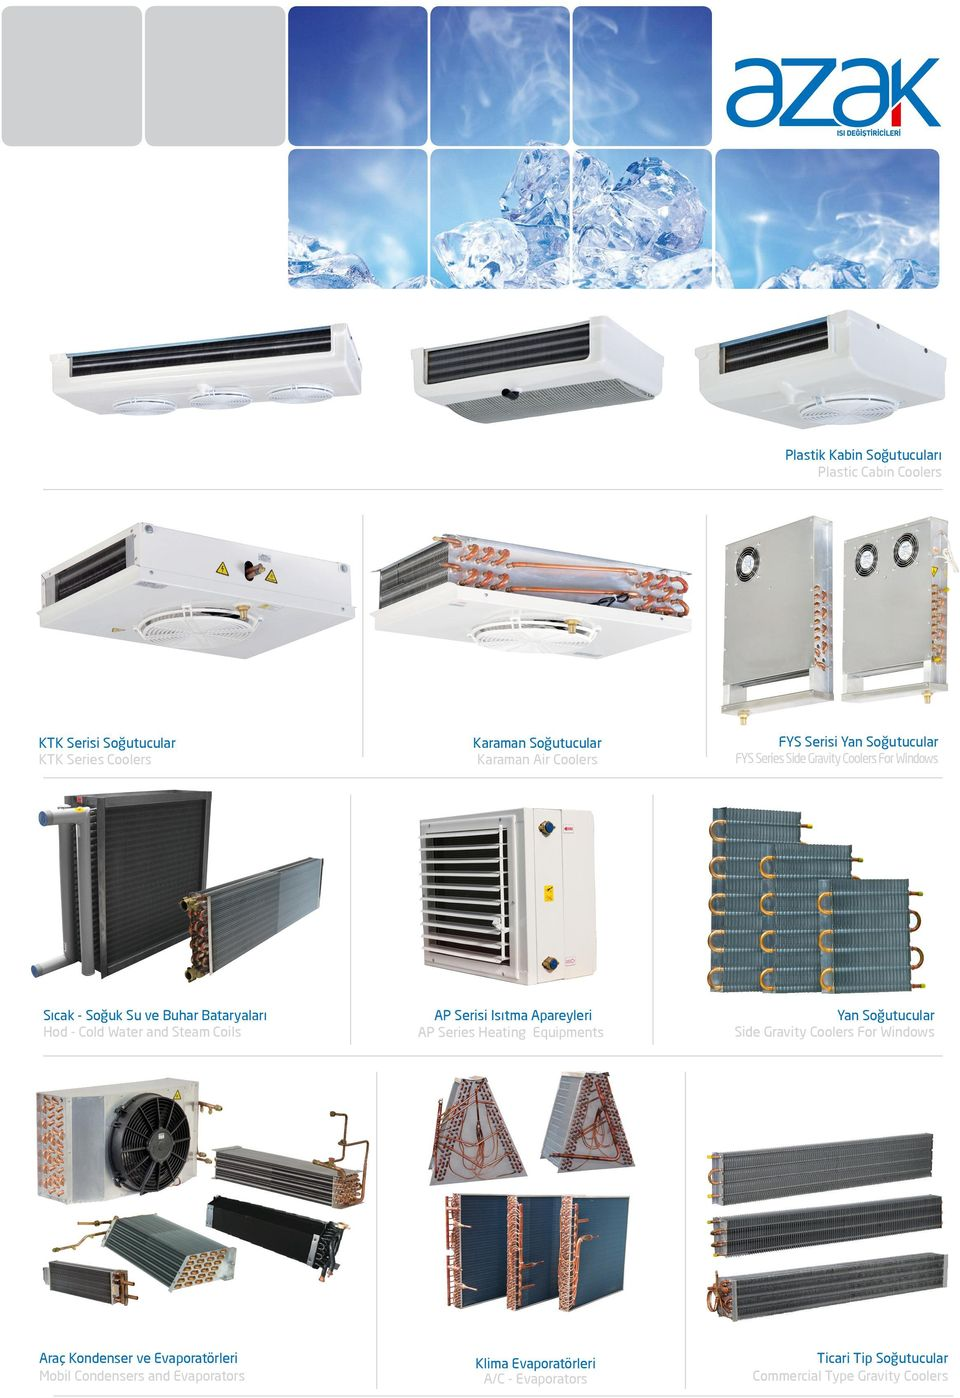 FYS Serisi Yan Soğutucular FYS Series Side Gravity Coolers For Windows AP Serisi Isıtma Apareyleri AP Series Heating Equipments Yan